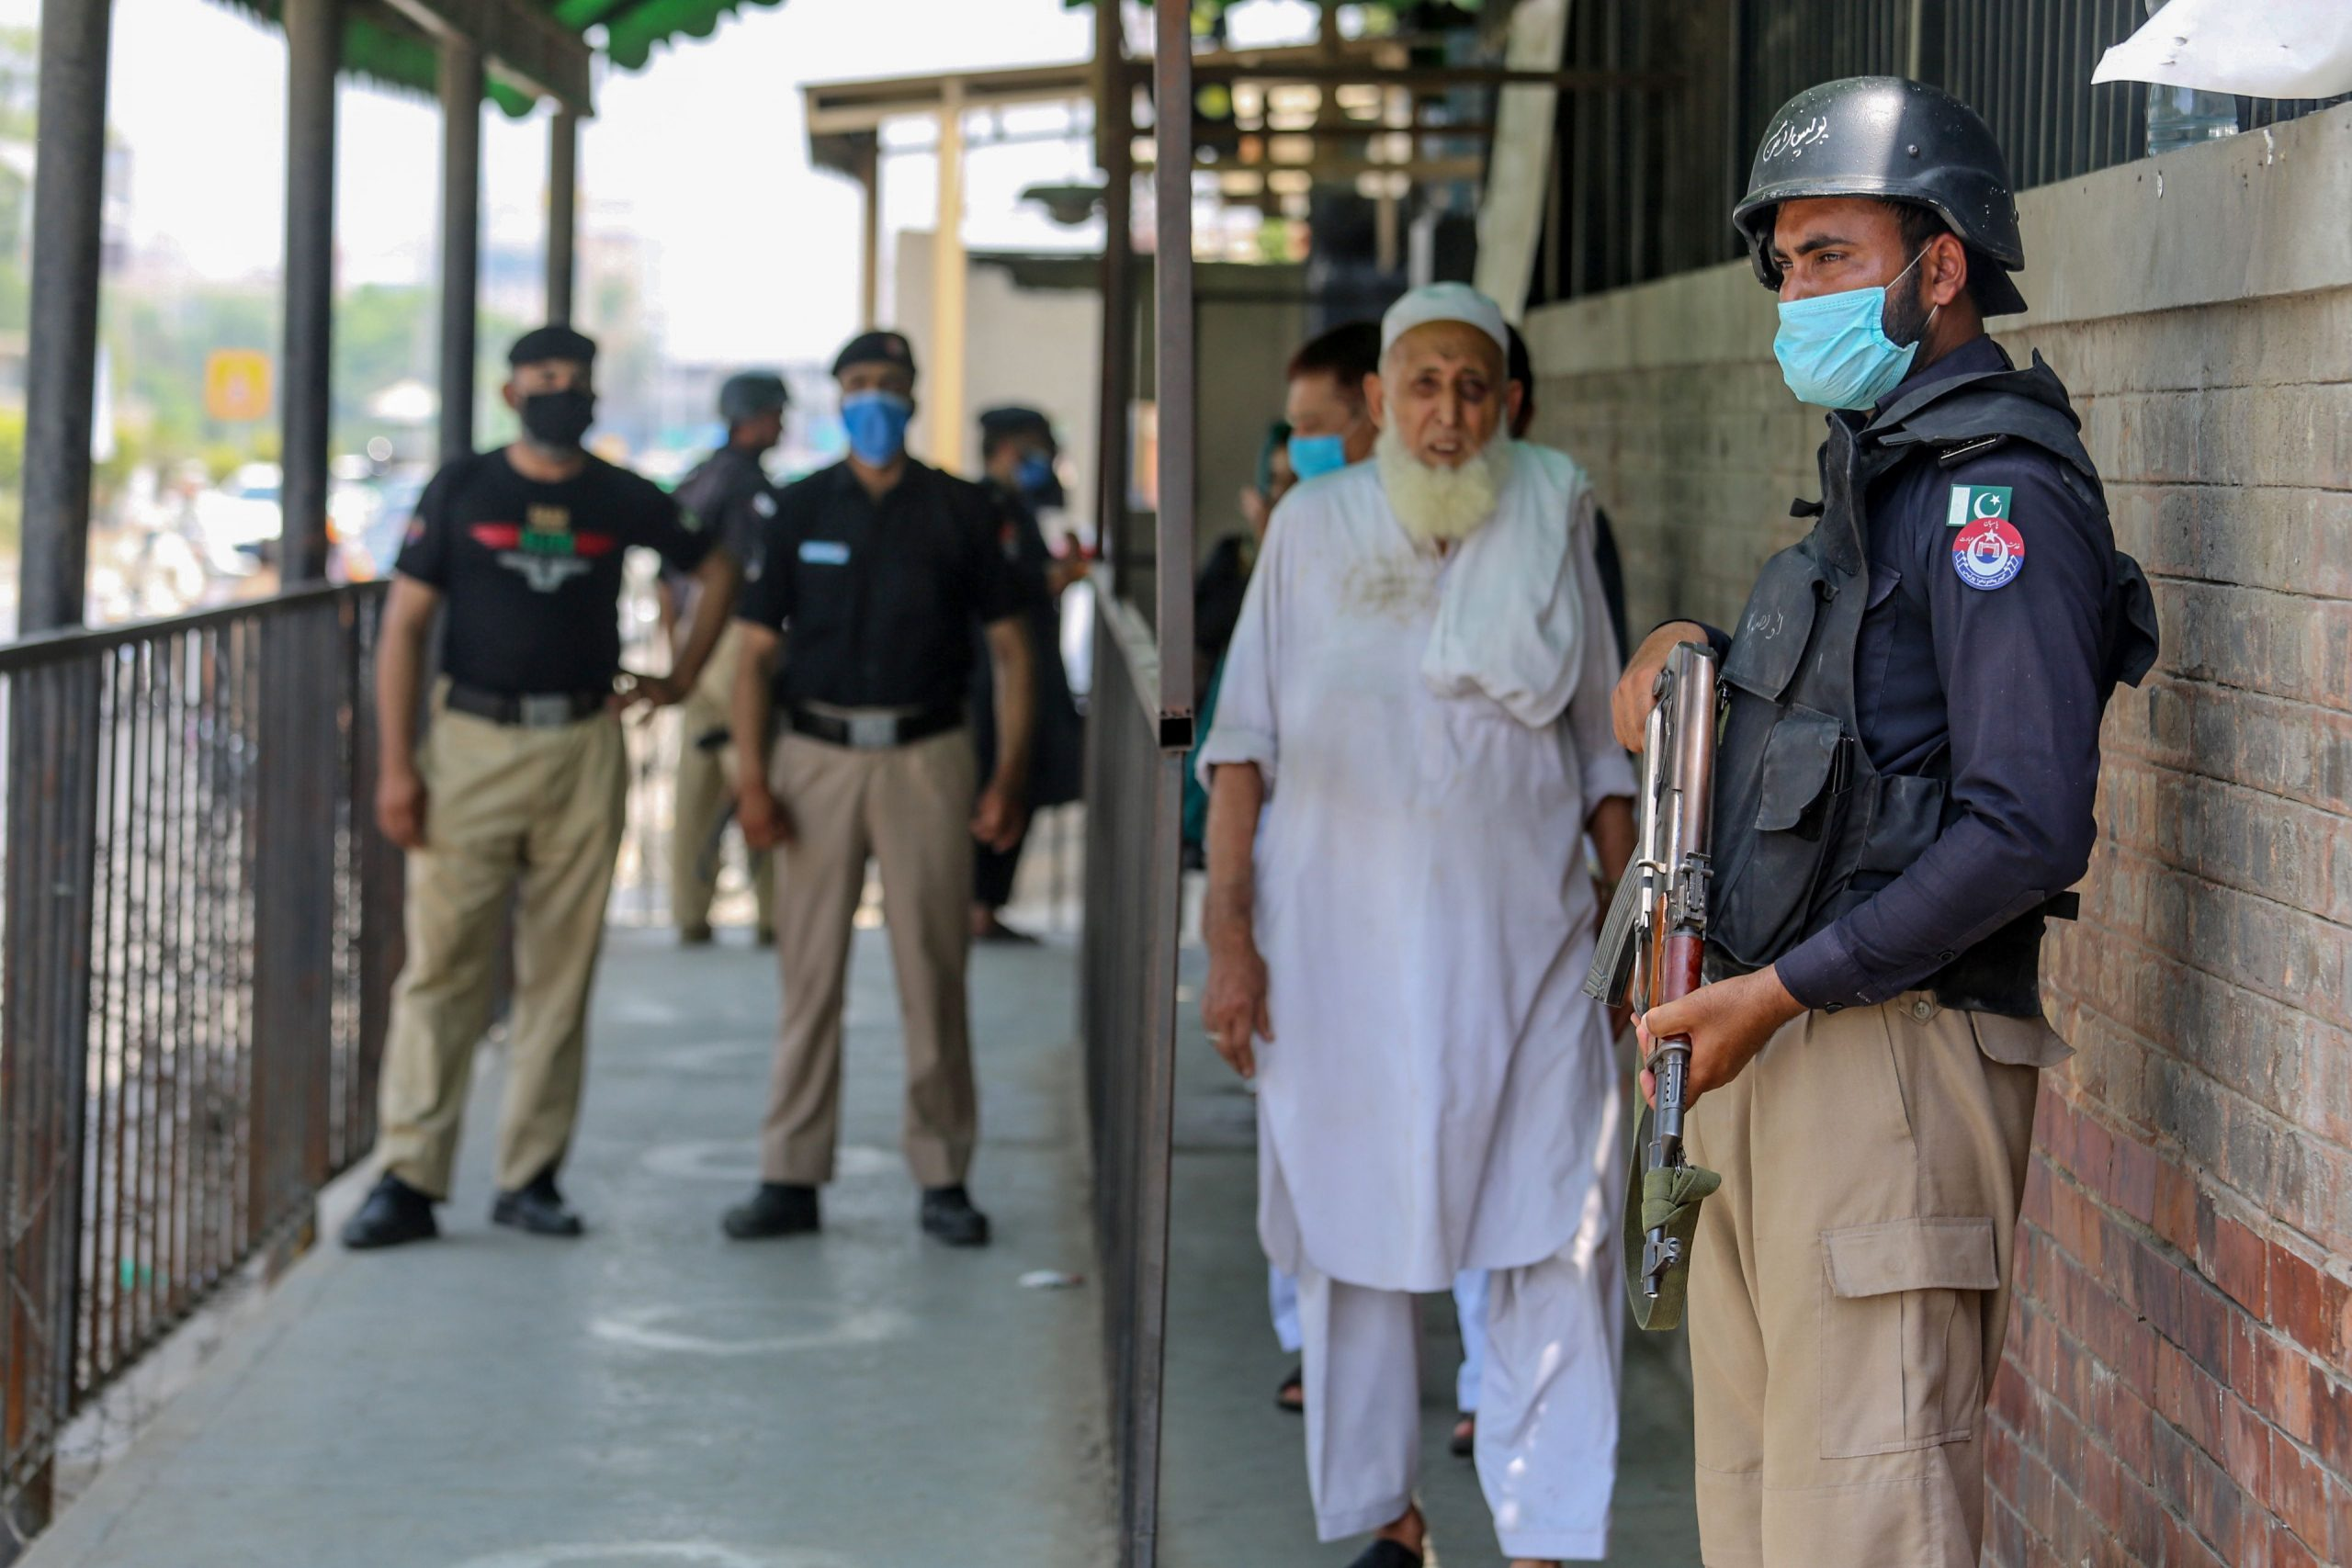 Security personnel (L and R) stand guard outside the district court building following the killing of a man allegedly accused of blasphemy in Peshawar on July 29, 2020. - A man from a persecuted Islamic sect was killed by an assailant in a Pakistani courtroom on July 29 ahead of his hearing on blasphemy charges, police said. (Photo by - / AFP) / To go with 'PAKISTAN-UNREST-RELIGION-MINORITY' (Photo by -/AFP via Getty Images)